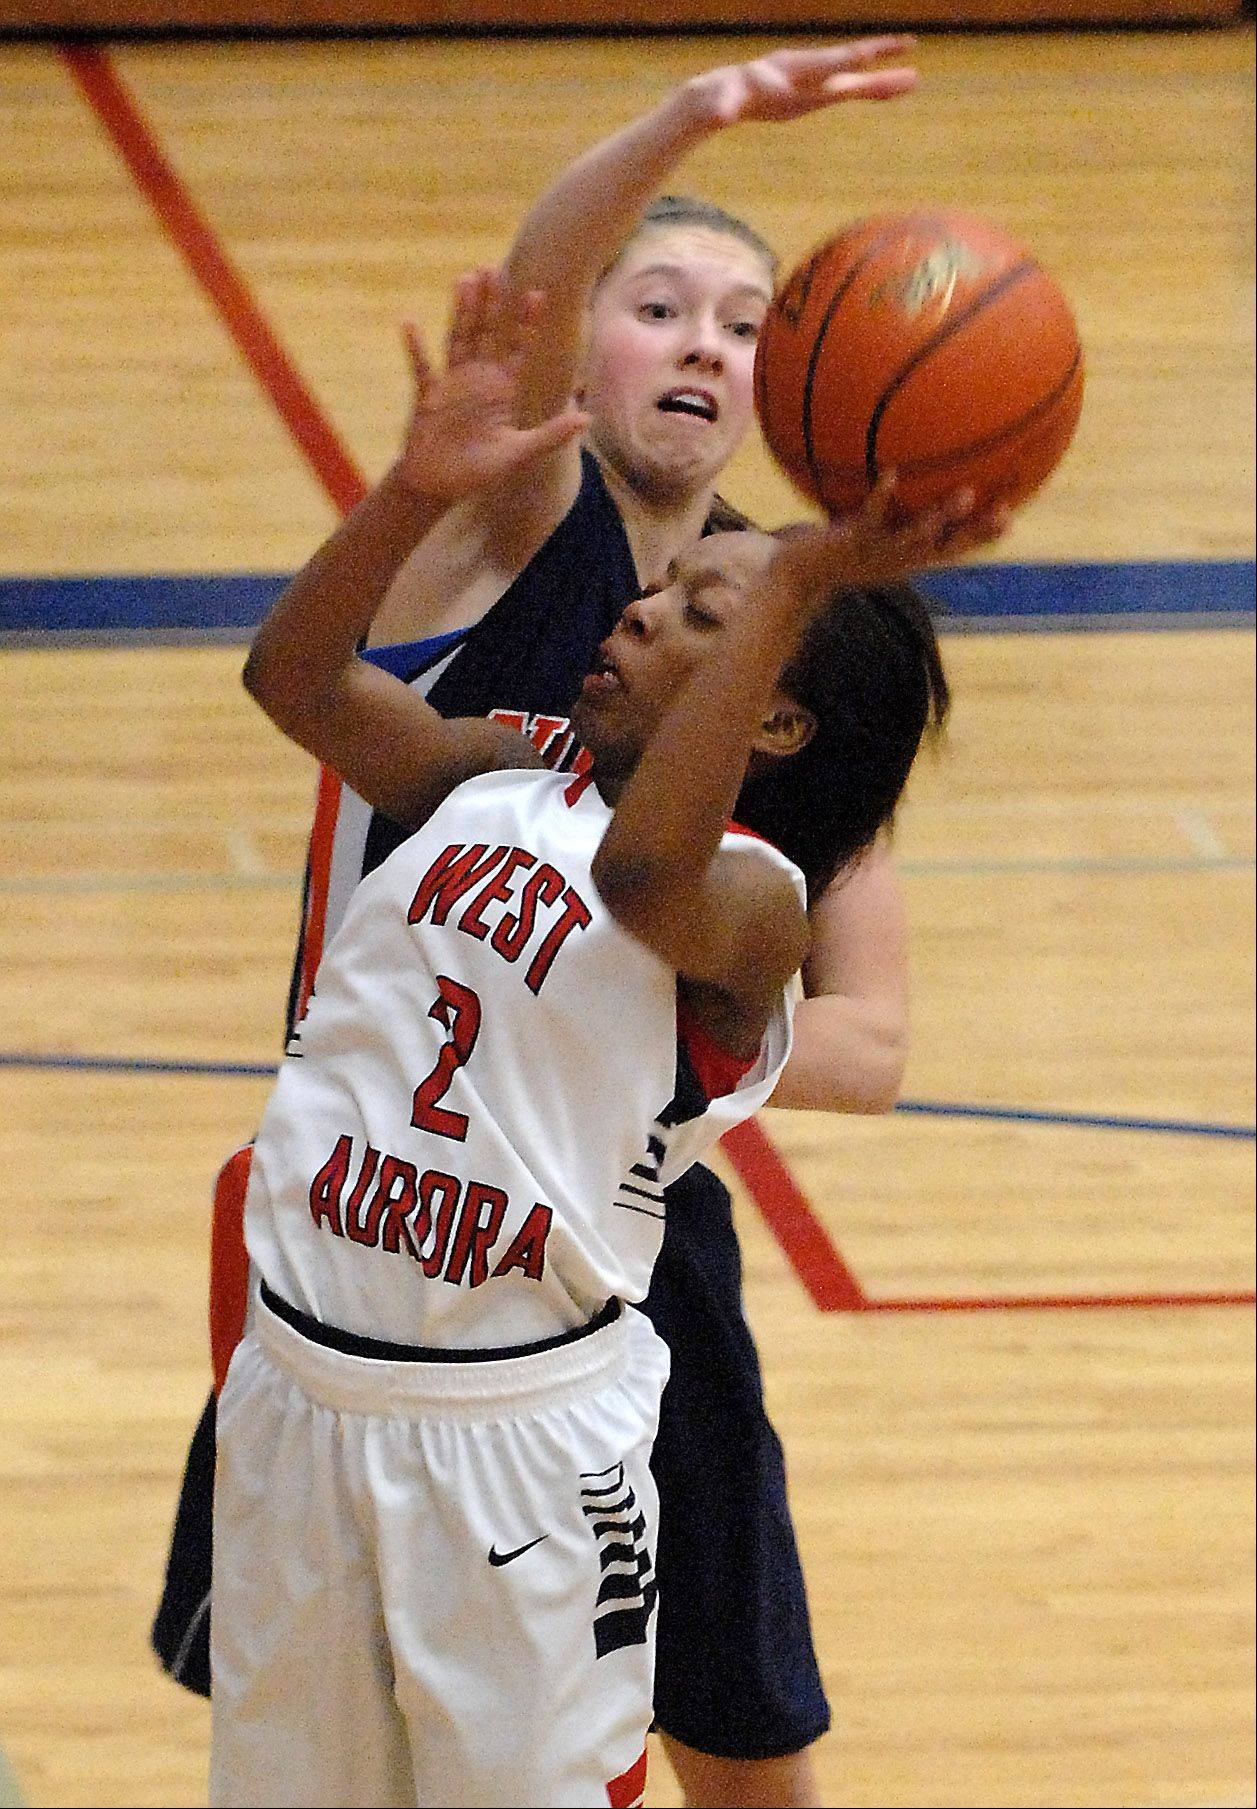 West Aurora's Alexis Wiggins has her shot blocked by Naperville North's Katie Cores during Thursday's game in Aurora.